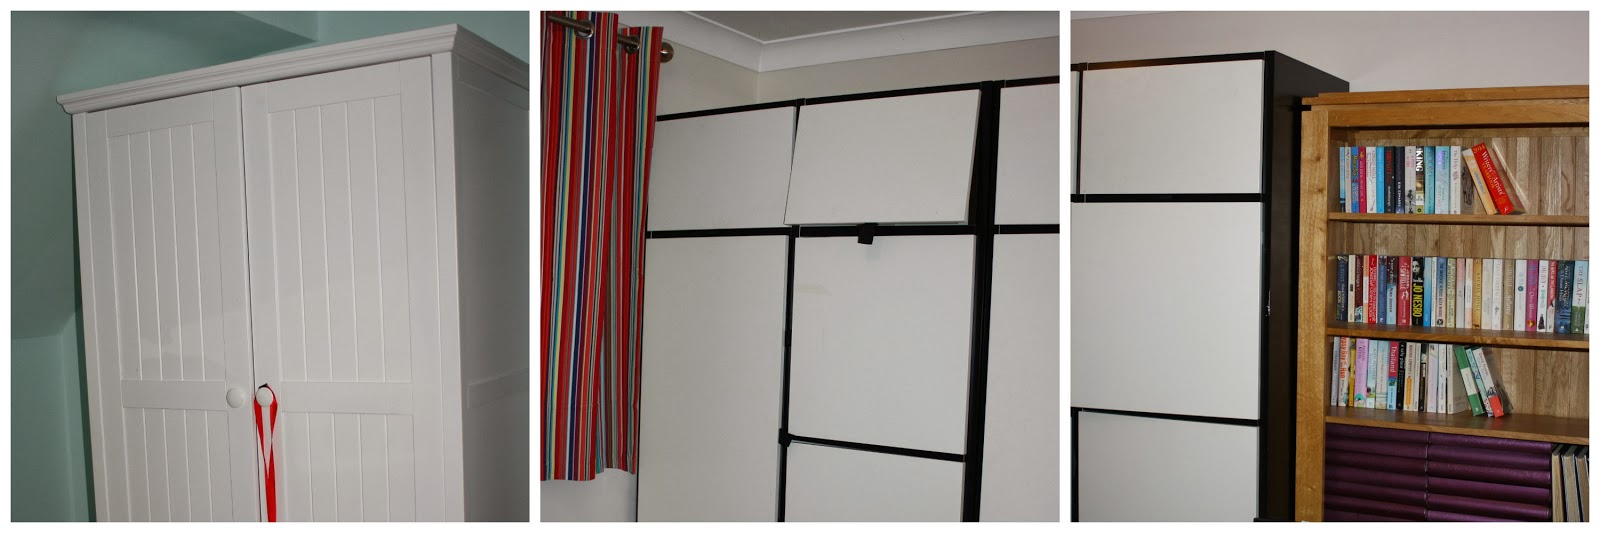 Wardrobes-bedrooms-new-house